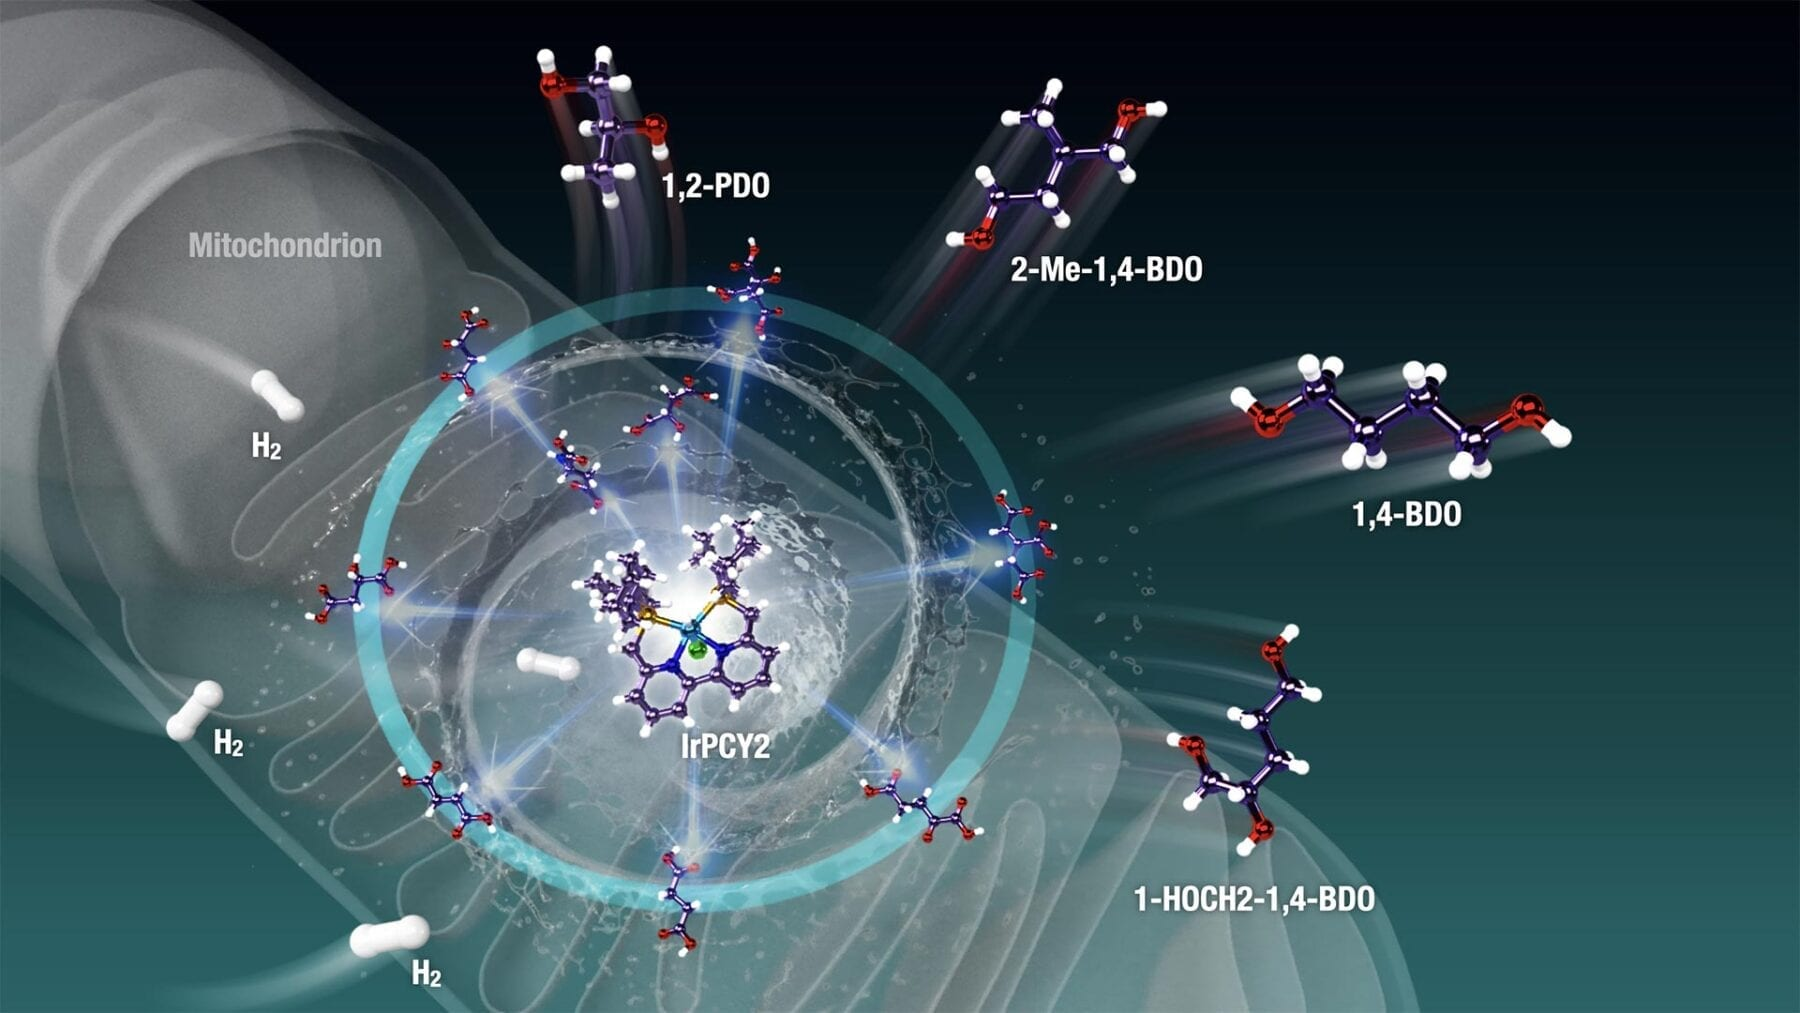 Catalyzing a zero-carbon world by harvesting energy from living cells